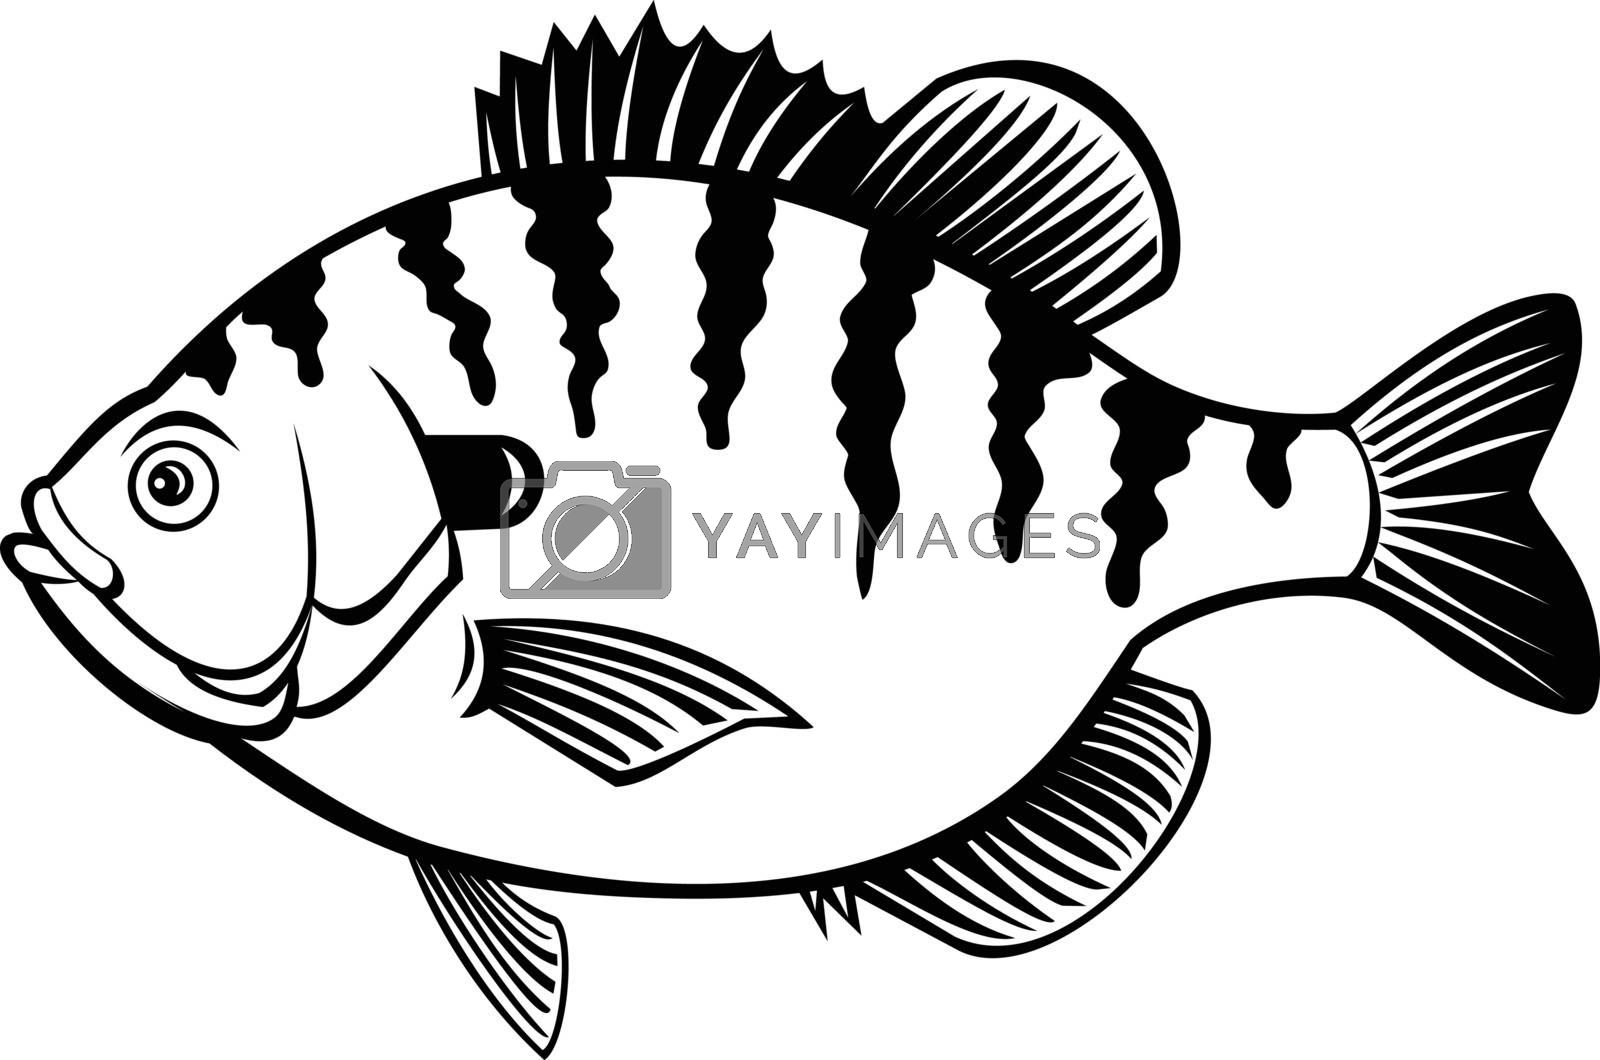 Black and white illustration of a bluegill, bream, brim, sunny or copper nose, a species of freshwater fish of the sunfish family Centrarchidae of order Perciformes on isolated white background.